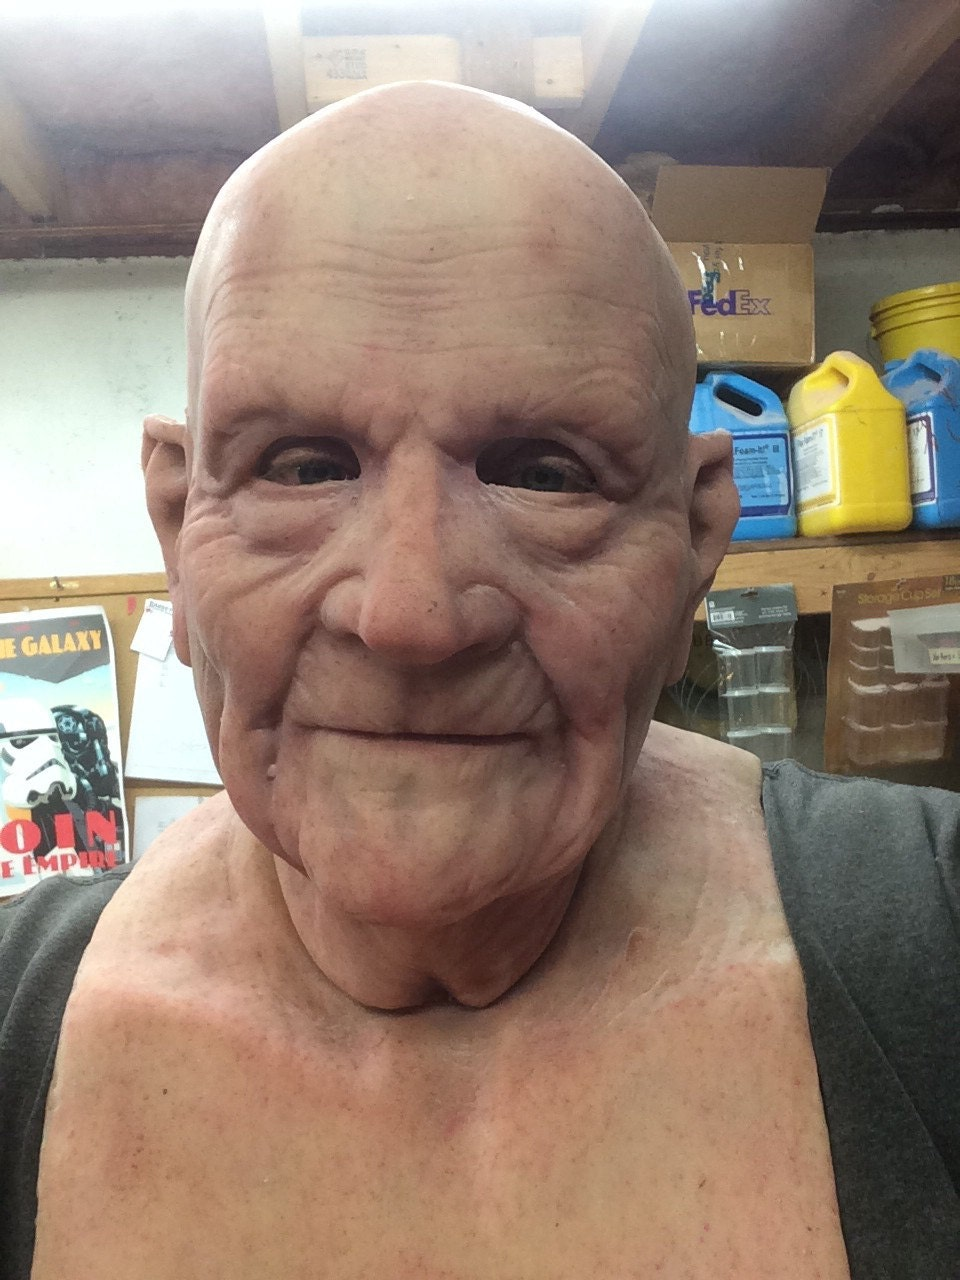 Barry Old Man Mask great disguise and made to order bald no